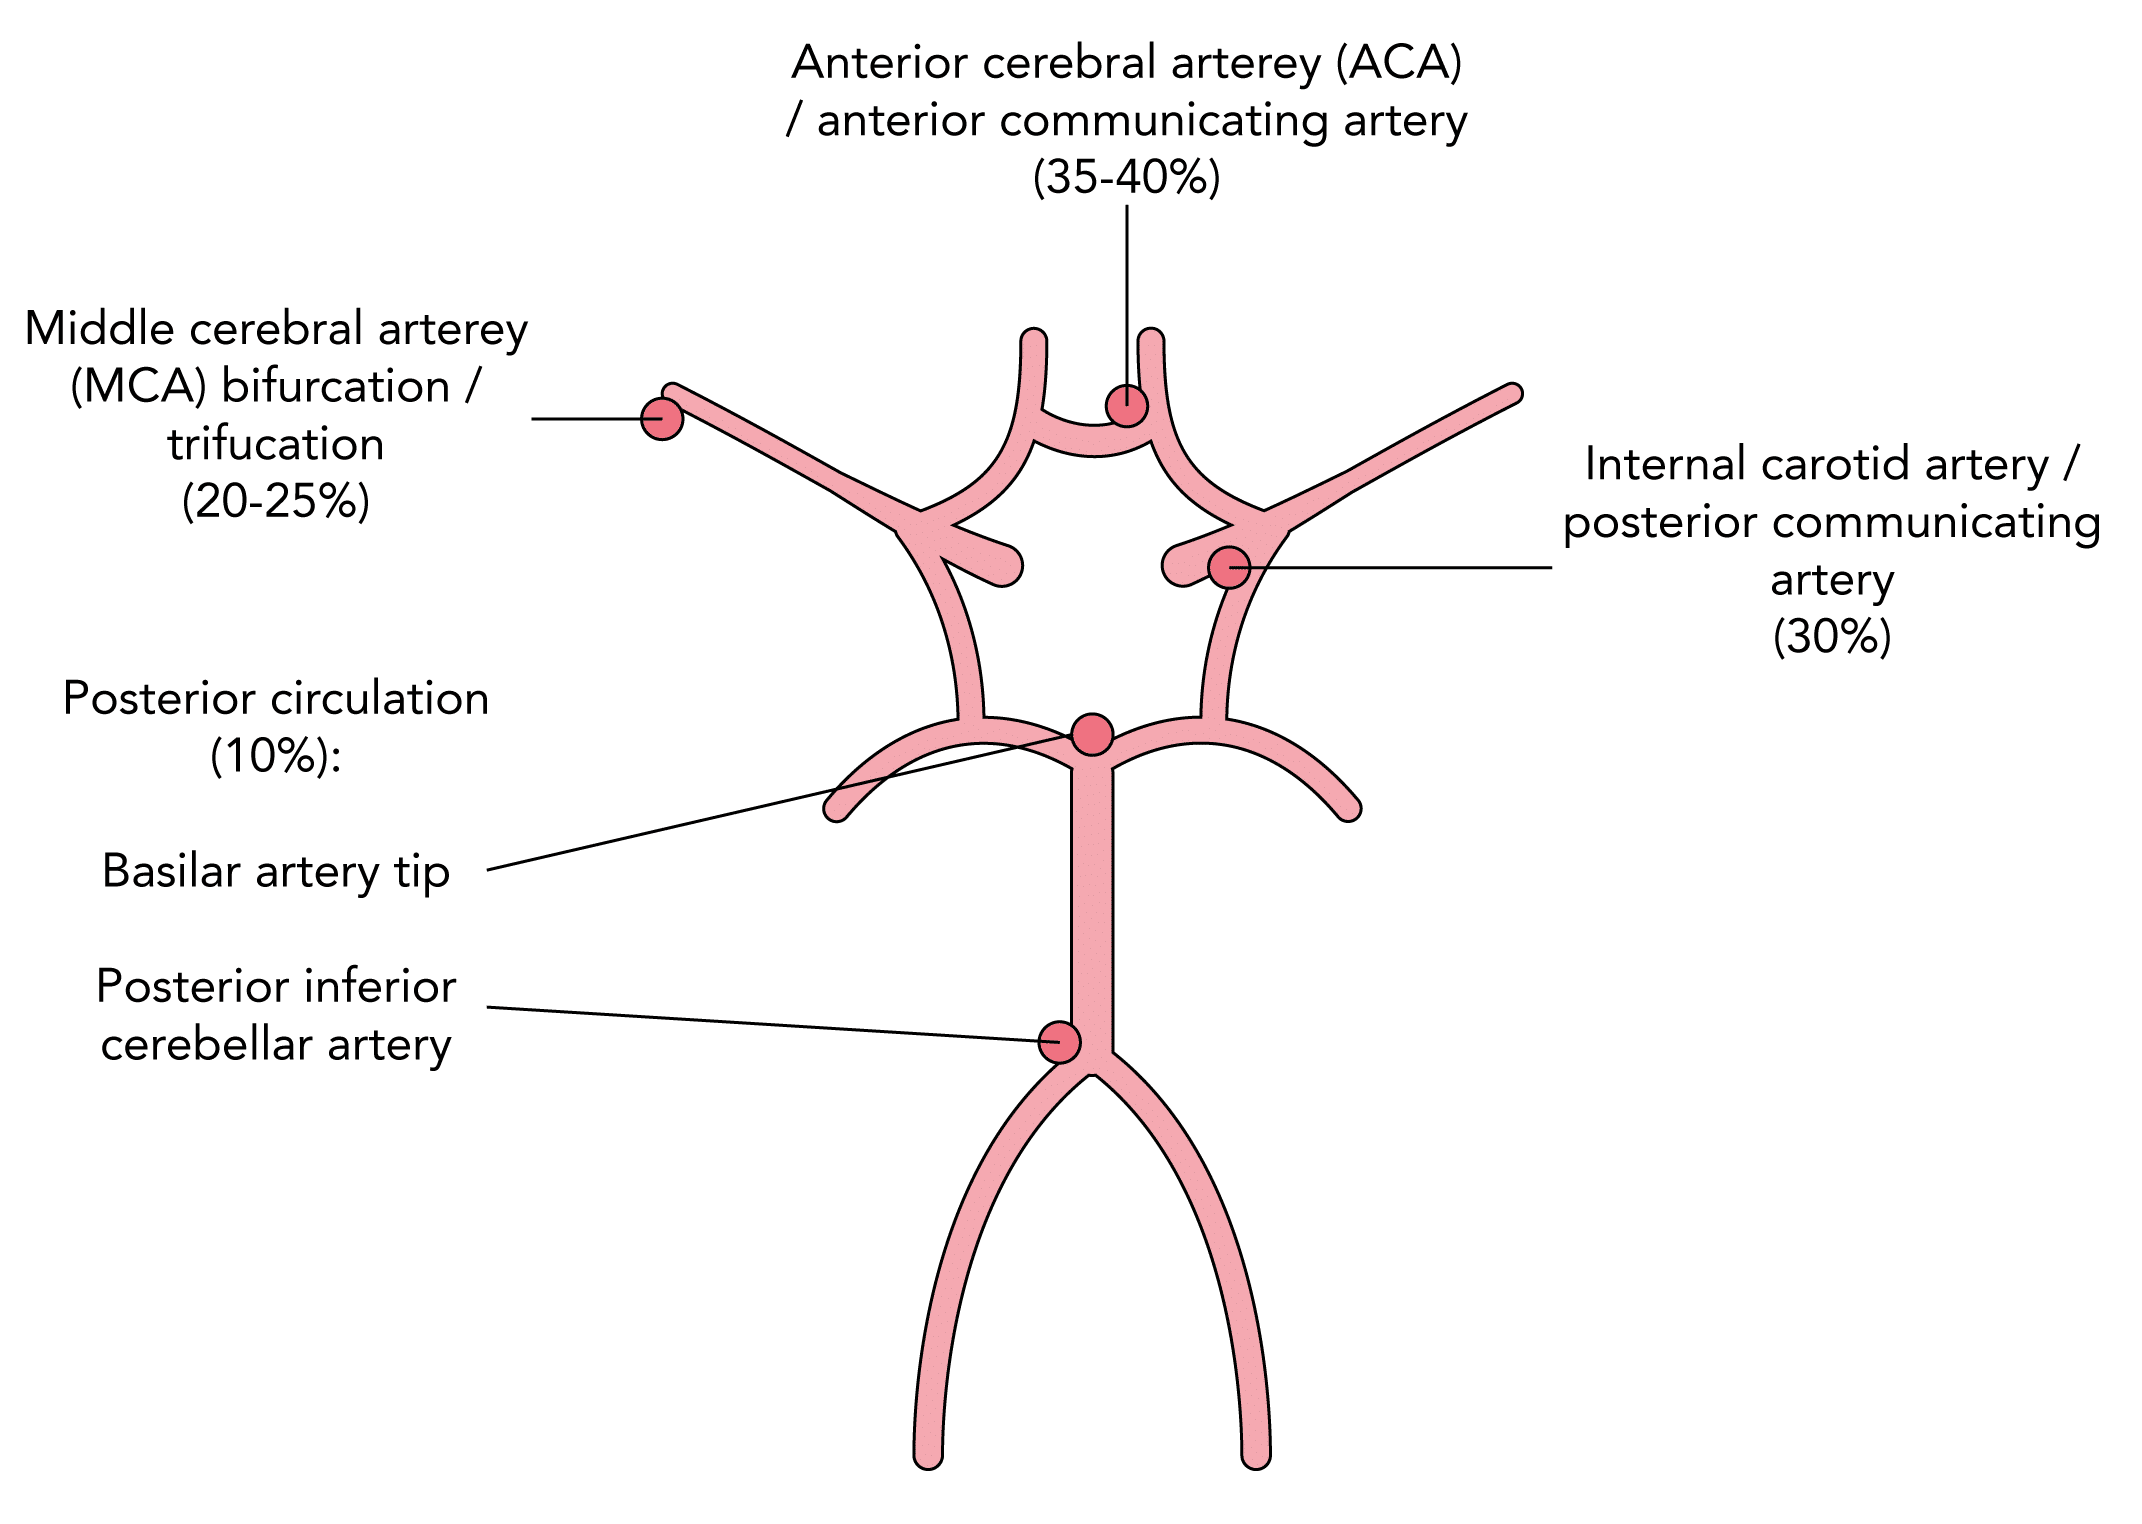 Common sites of saccular (berry) aneurysms in the cerebral circulation